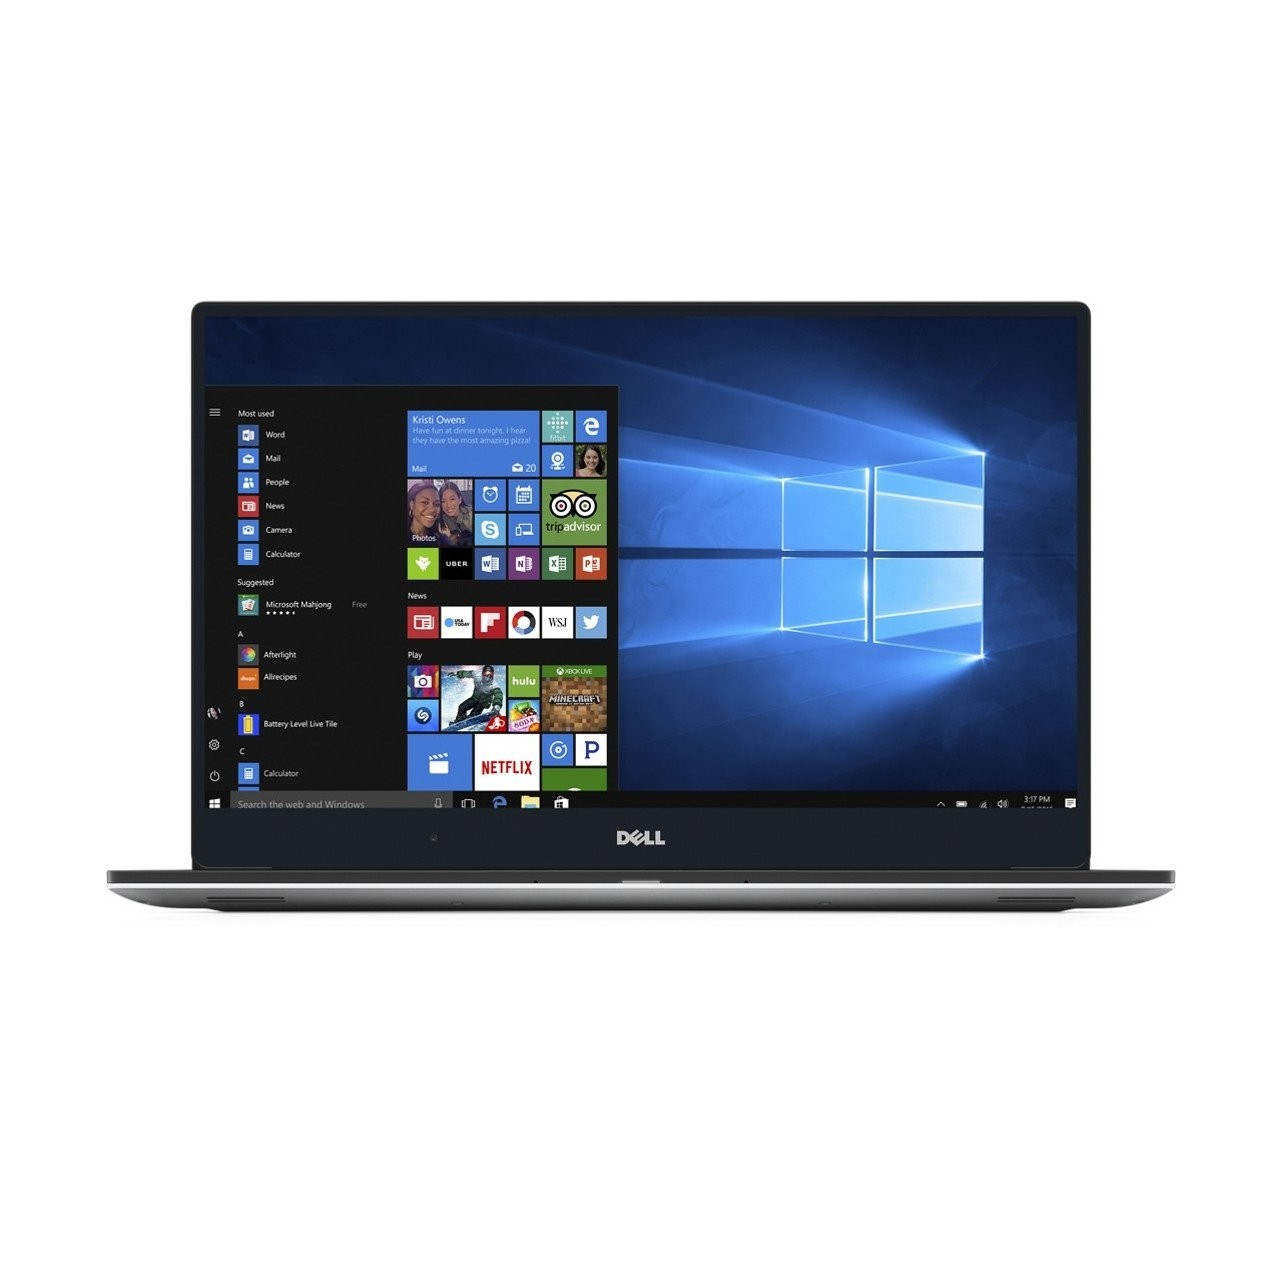 Refurbished laptops & desktops - Refurbished Dell XPS 15 - 9560/Intel 7th Gen Ci7-7700HQ/15.6inch FHD/256GB SSD/8GB/NVIDIA GeForce GTX 1050 Graphics with 4GB GDDR5/Win 10 Home